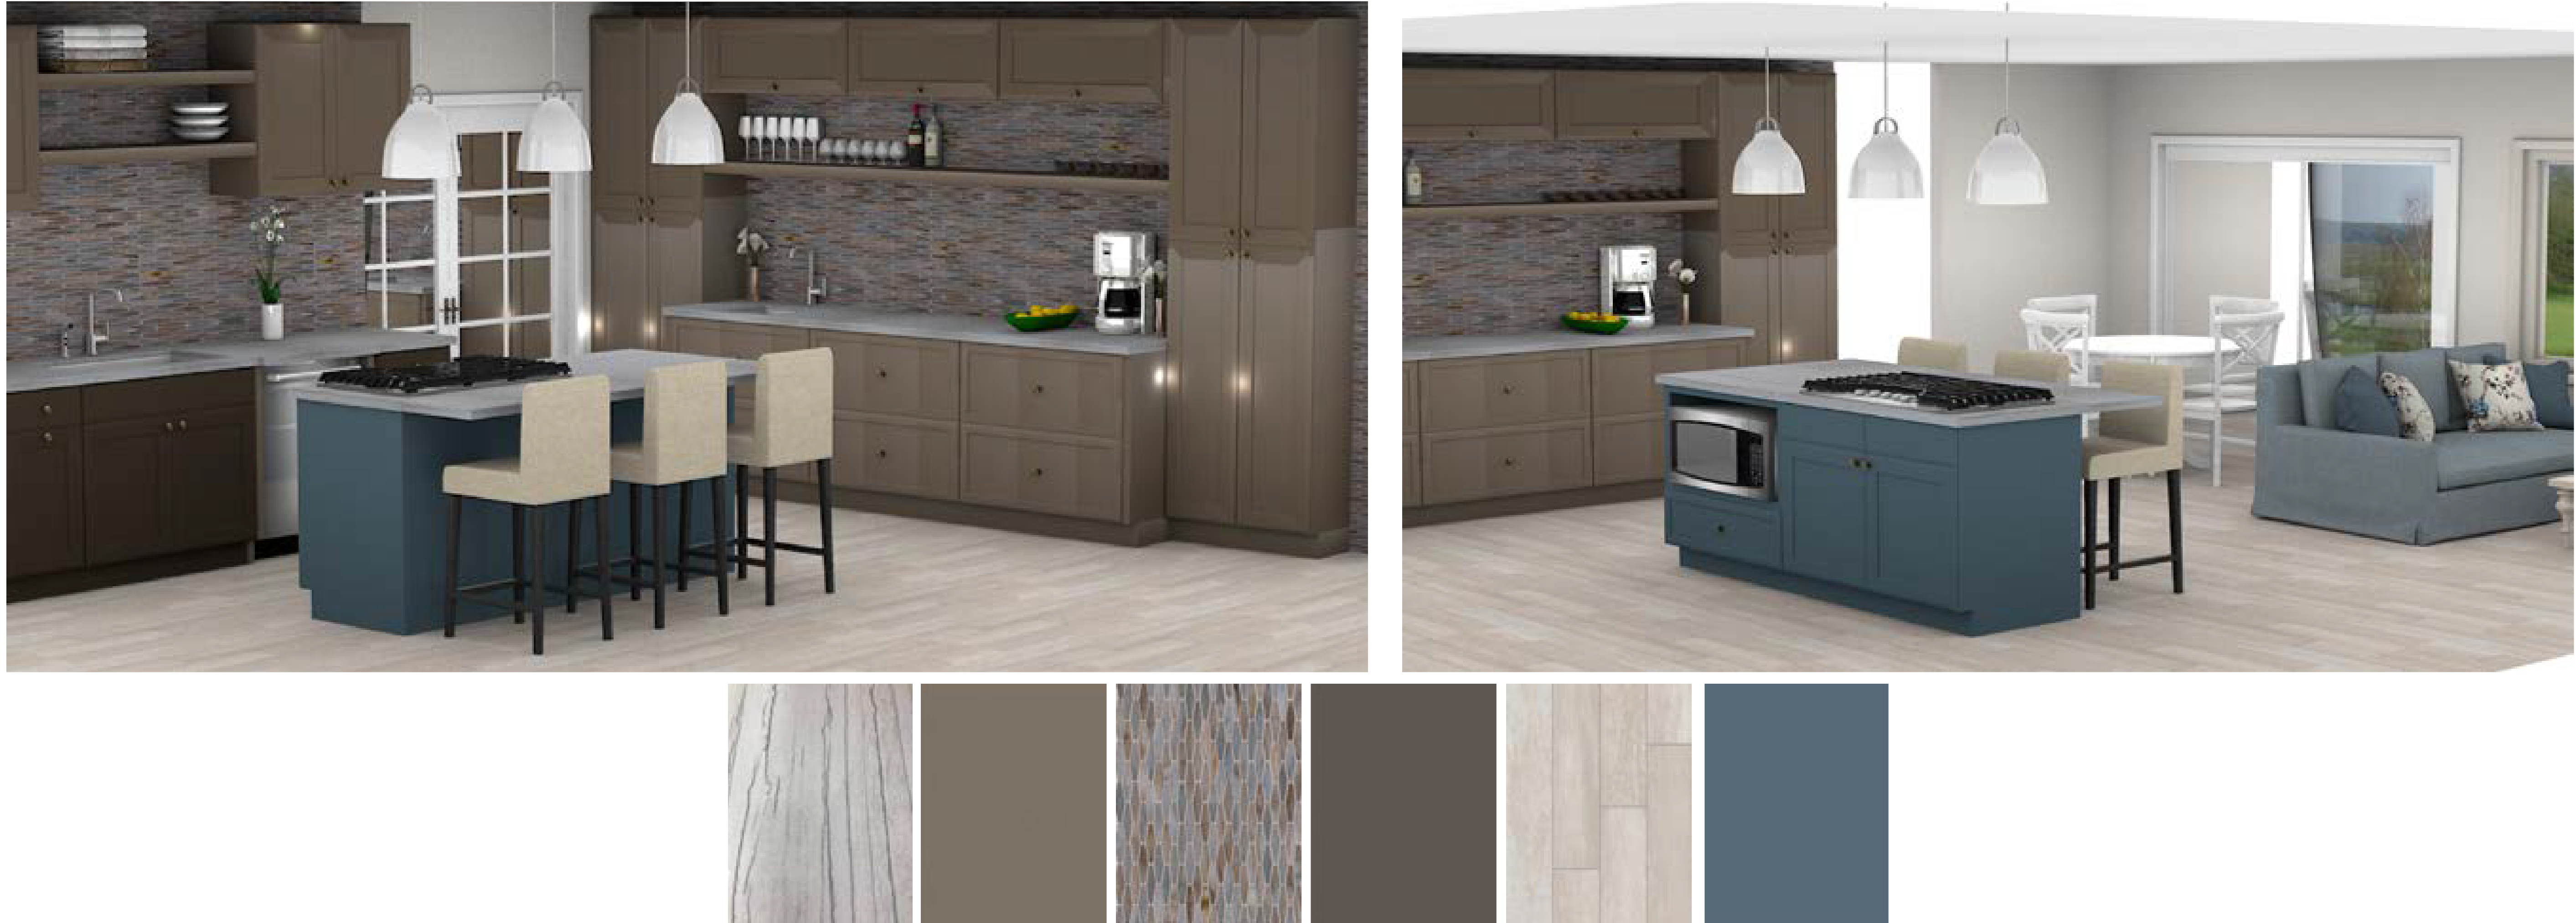 tampa kitchen design studio